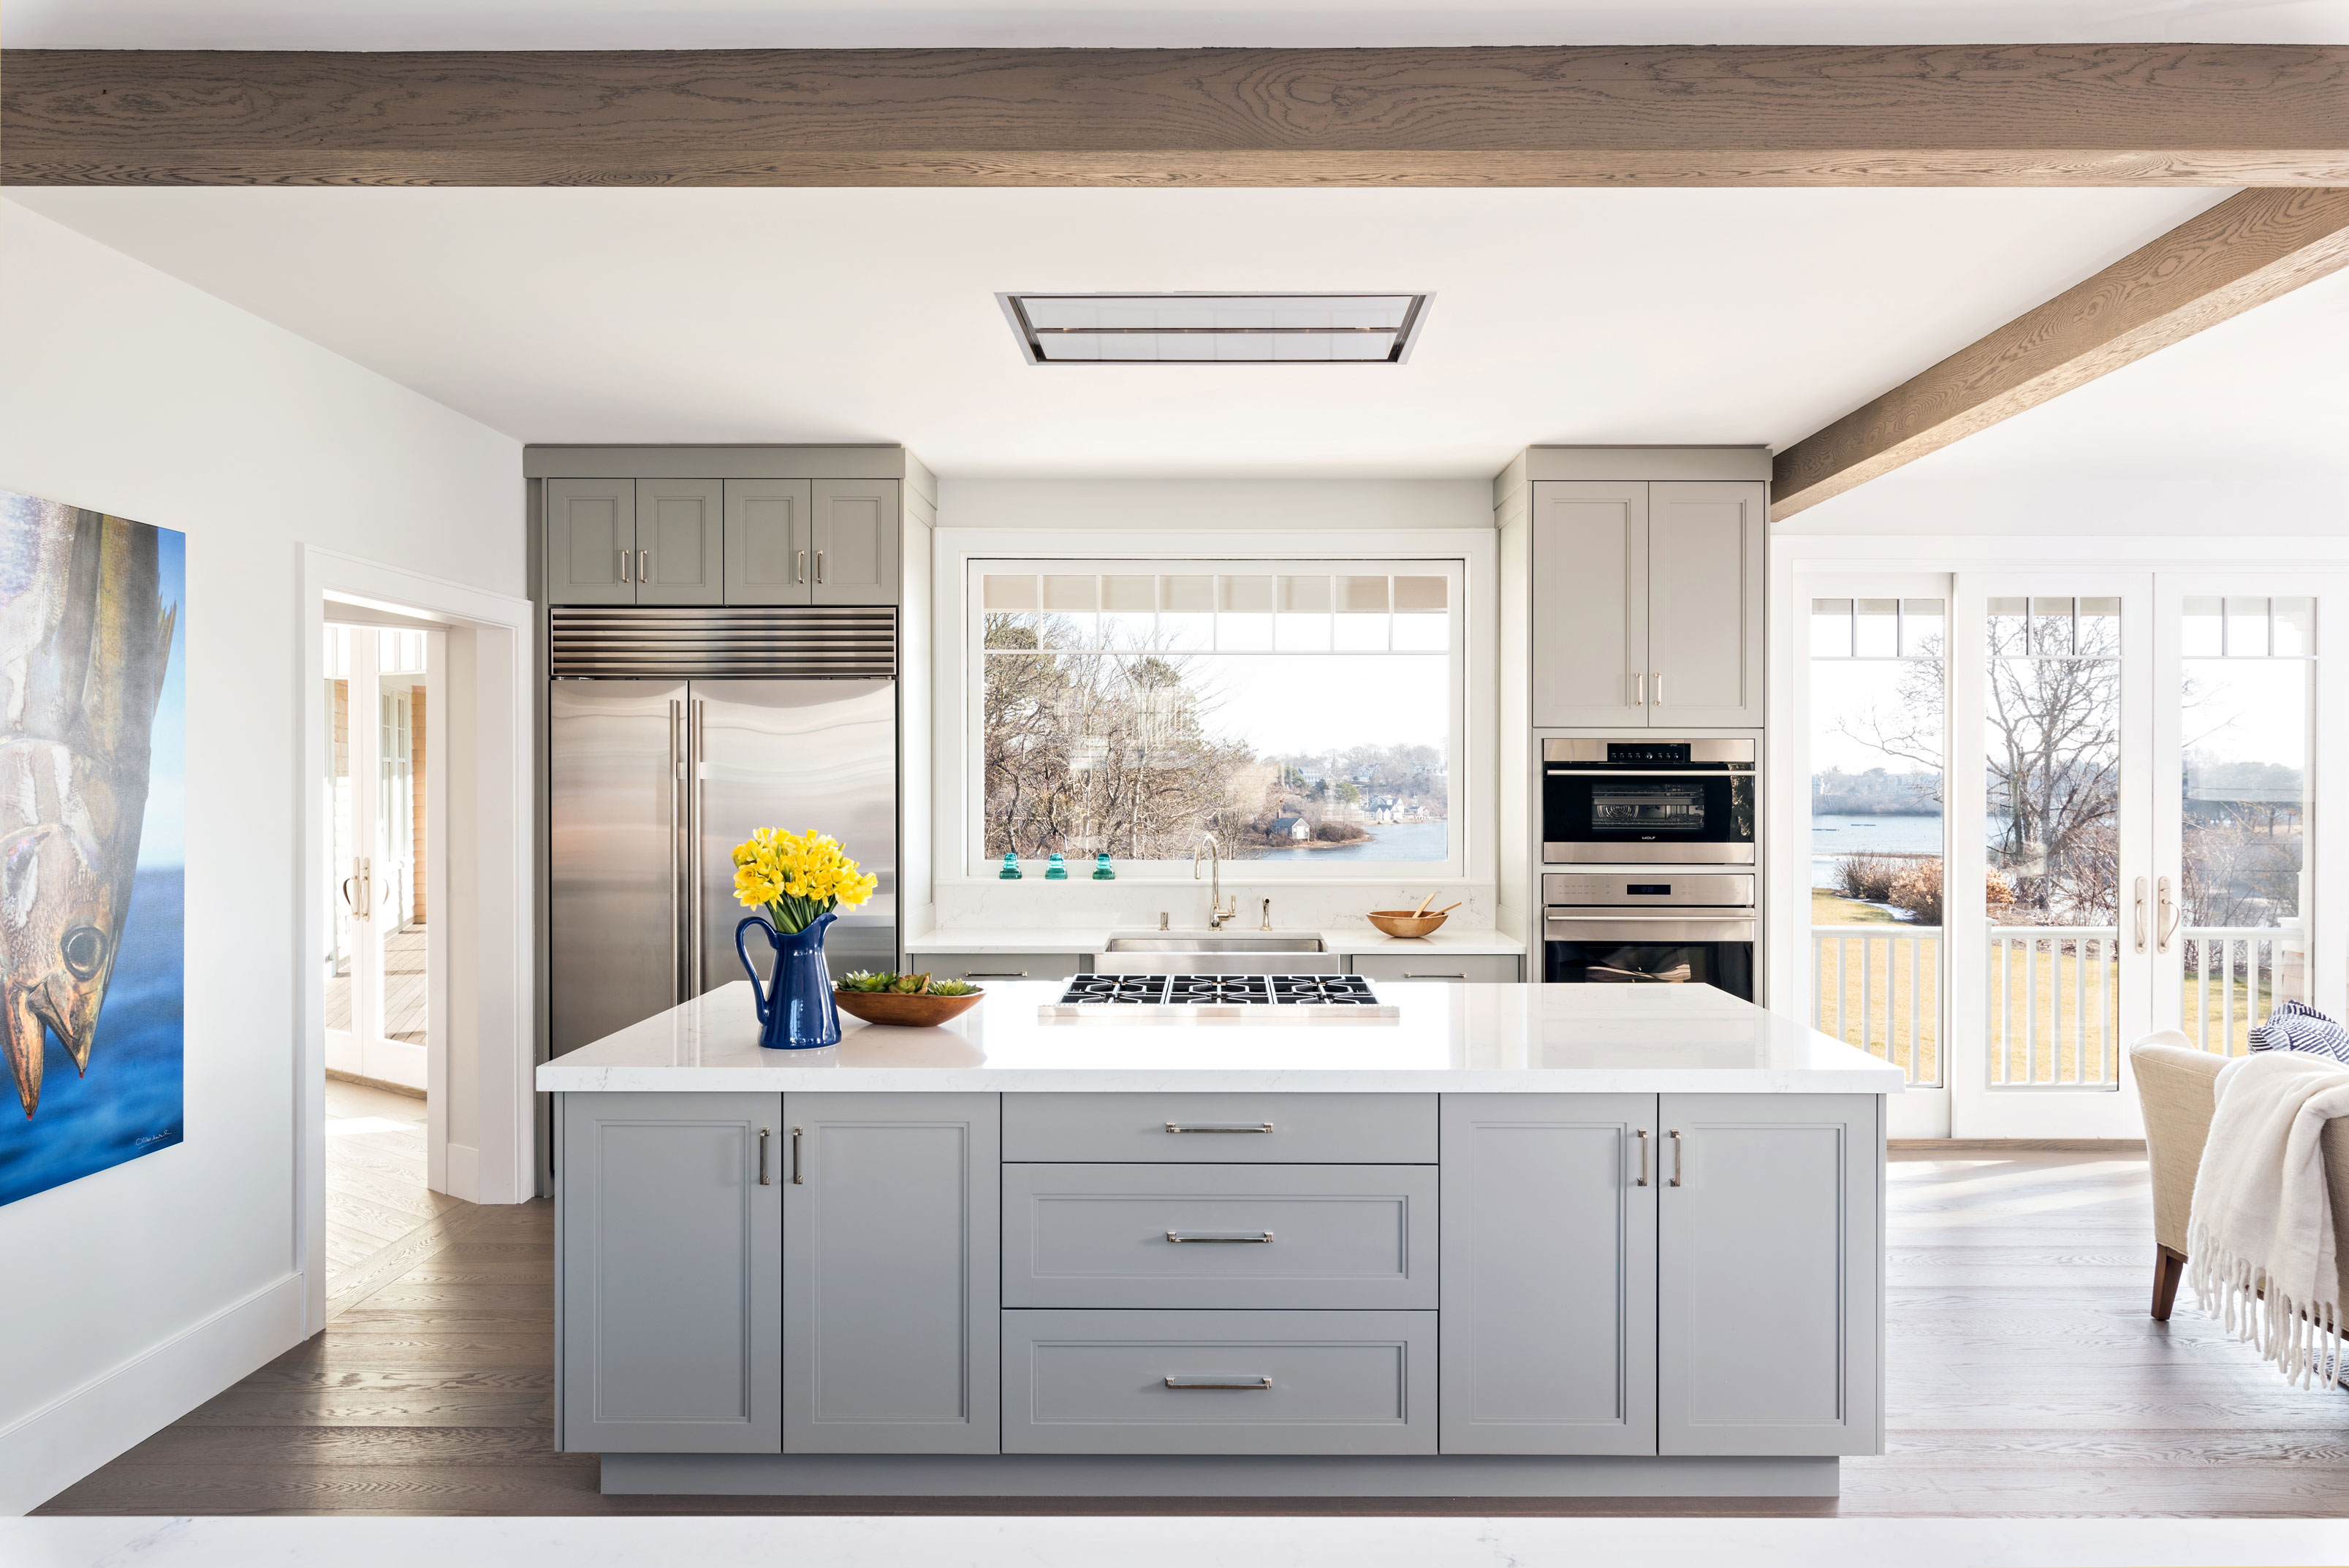 Kitchen with gray cabinets and view of water